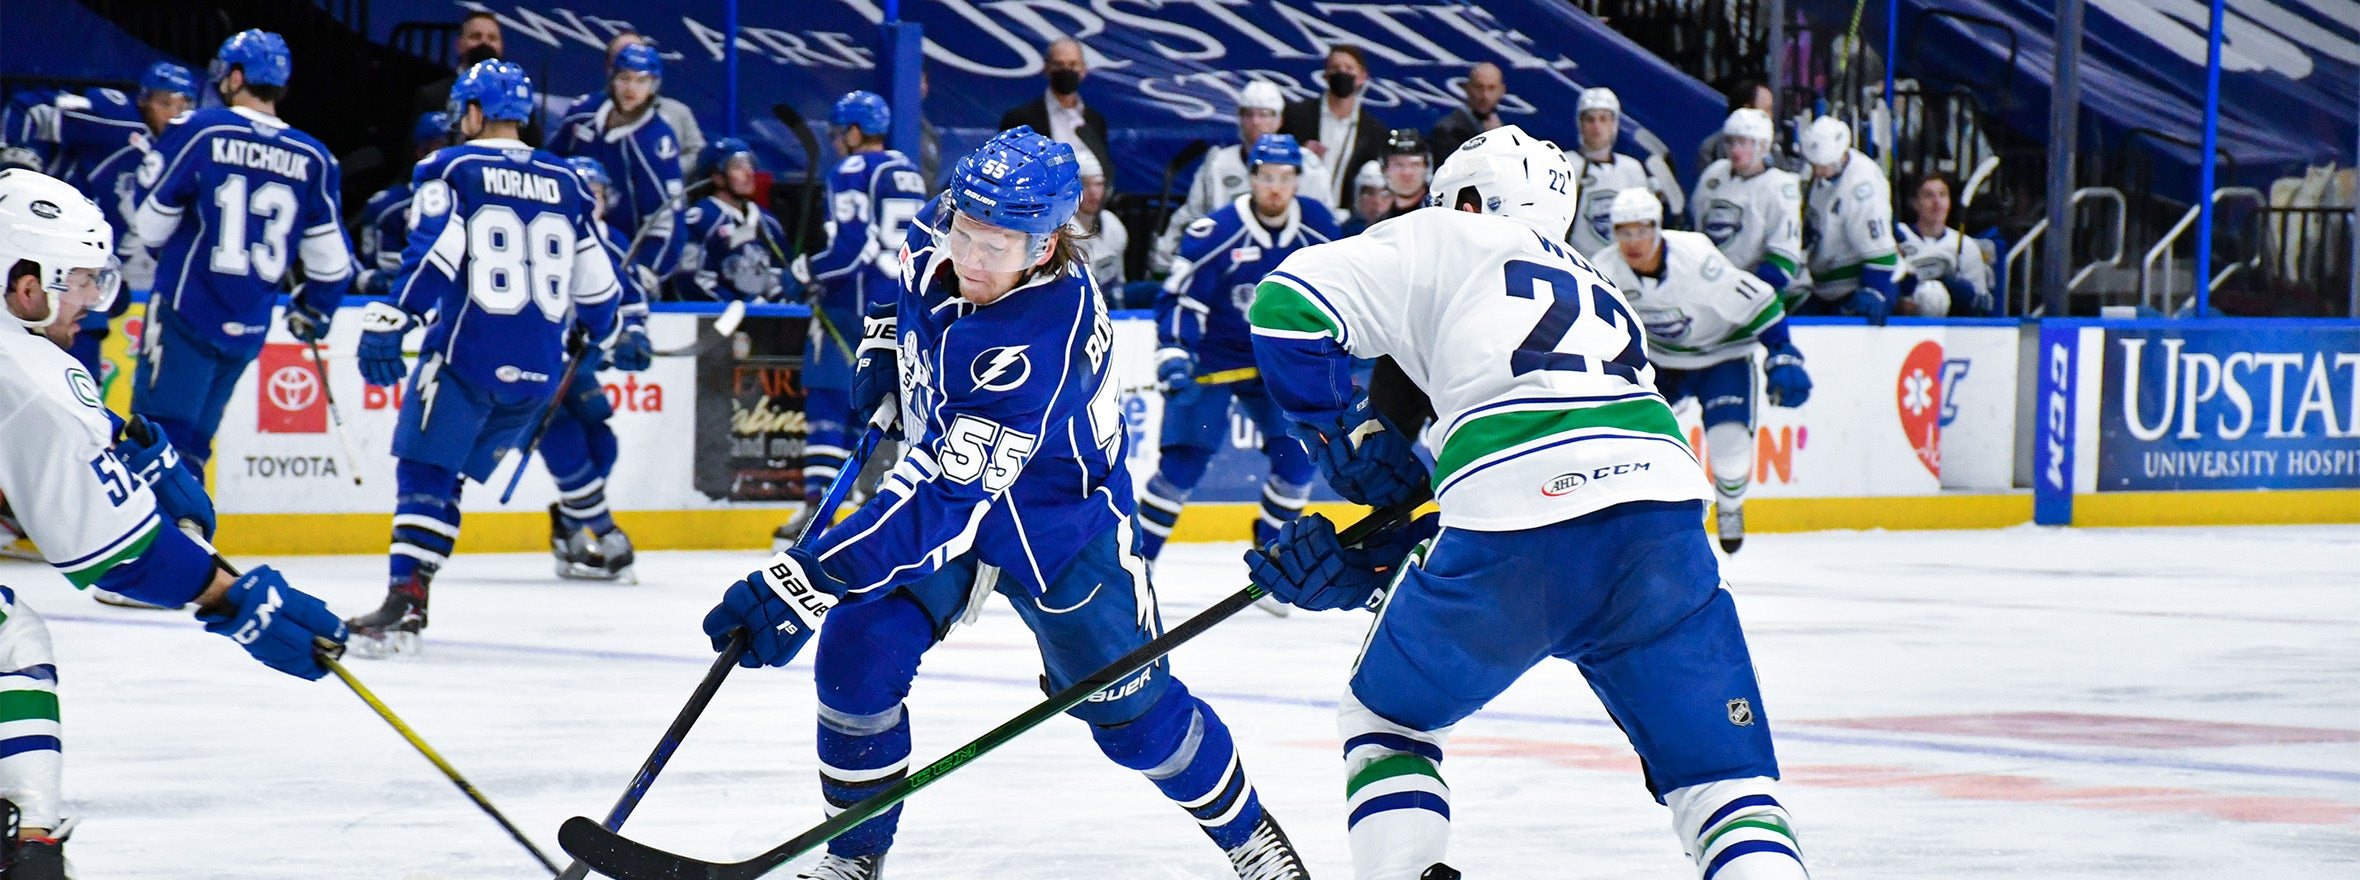 COMETS FALL TO CRUNCH 5-2